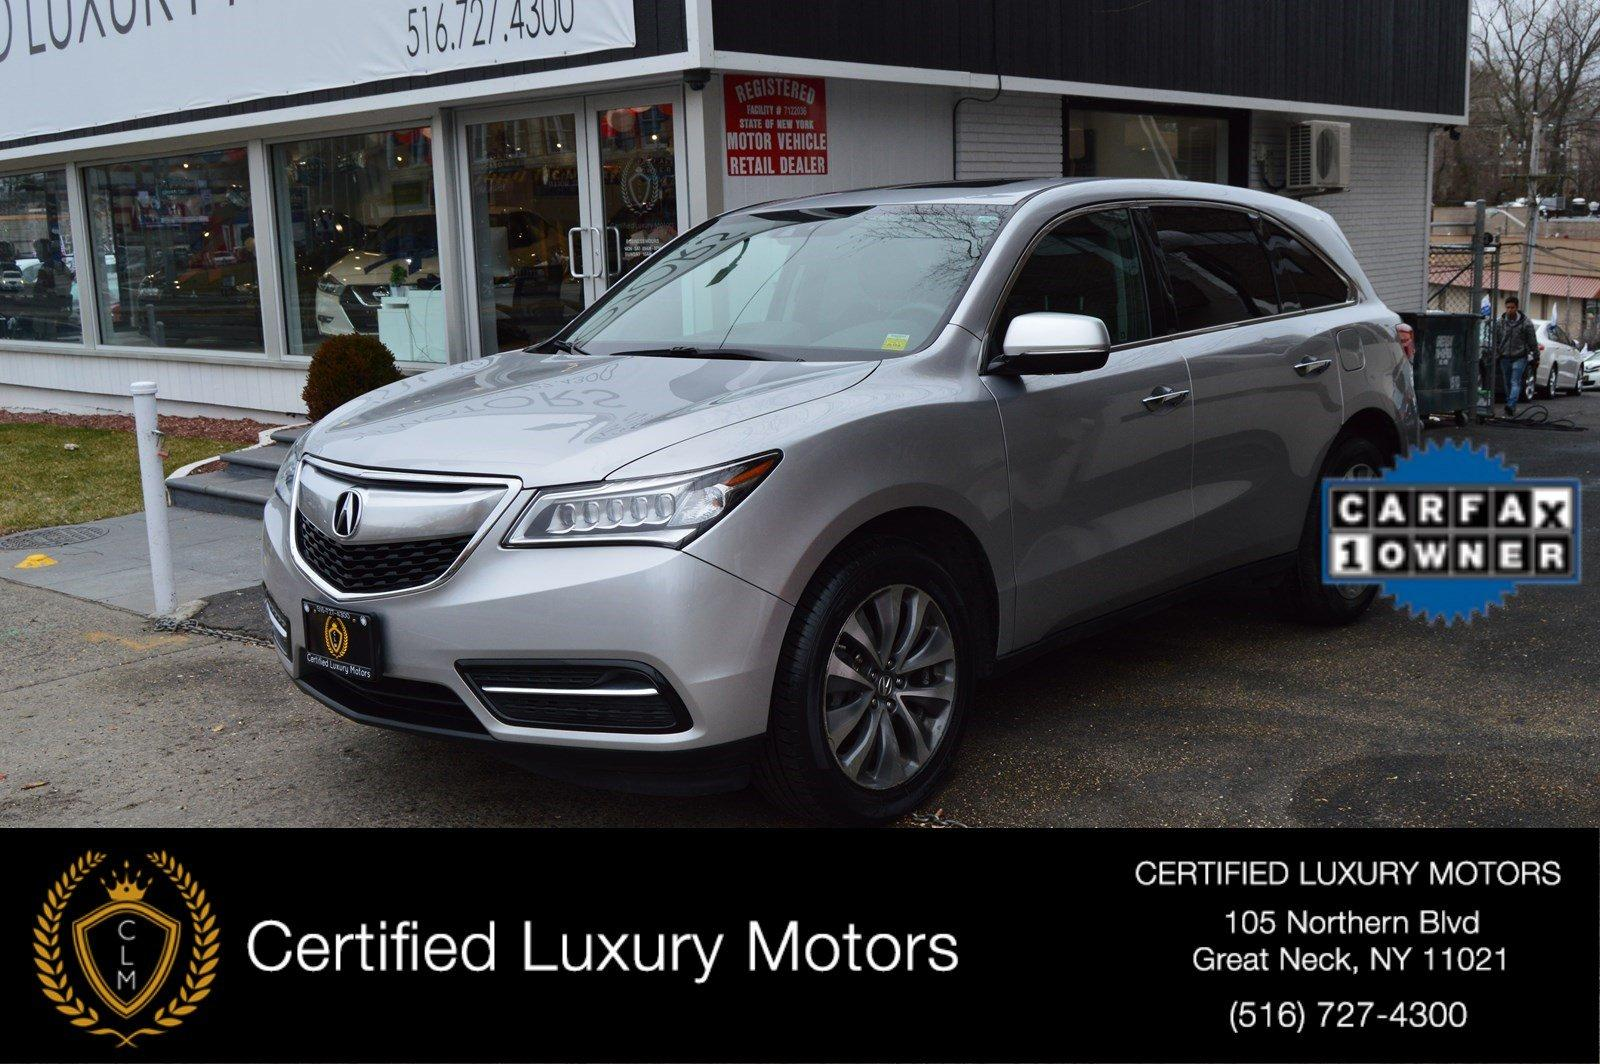 mdx colorado sale price springs for used detail image co acura in